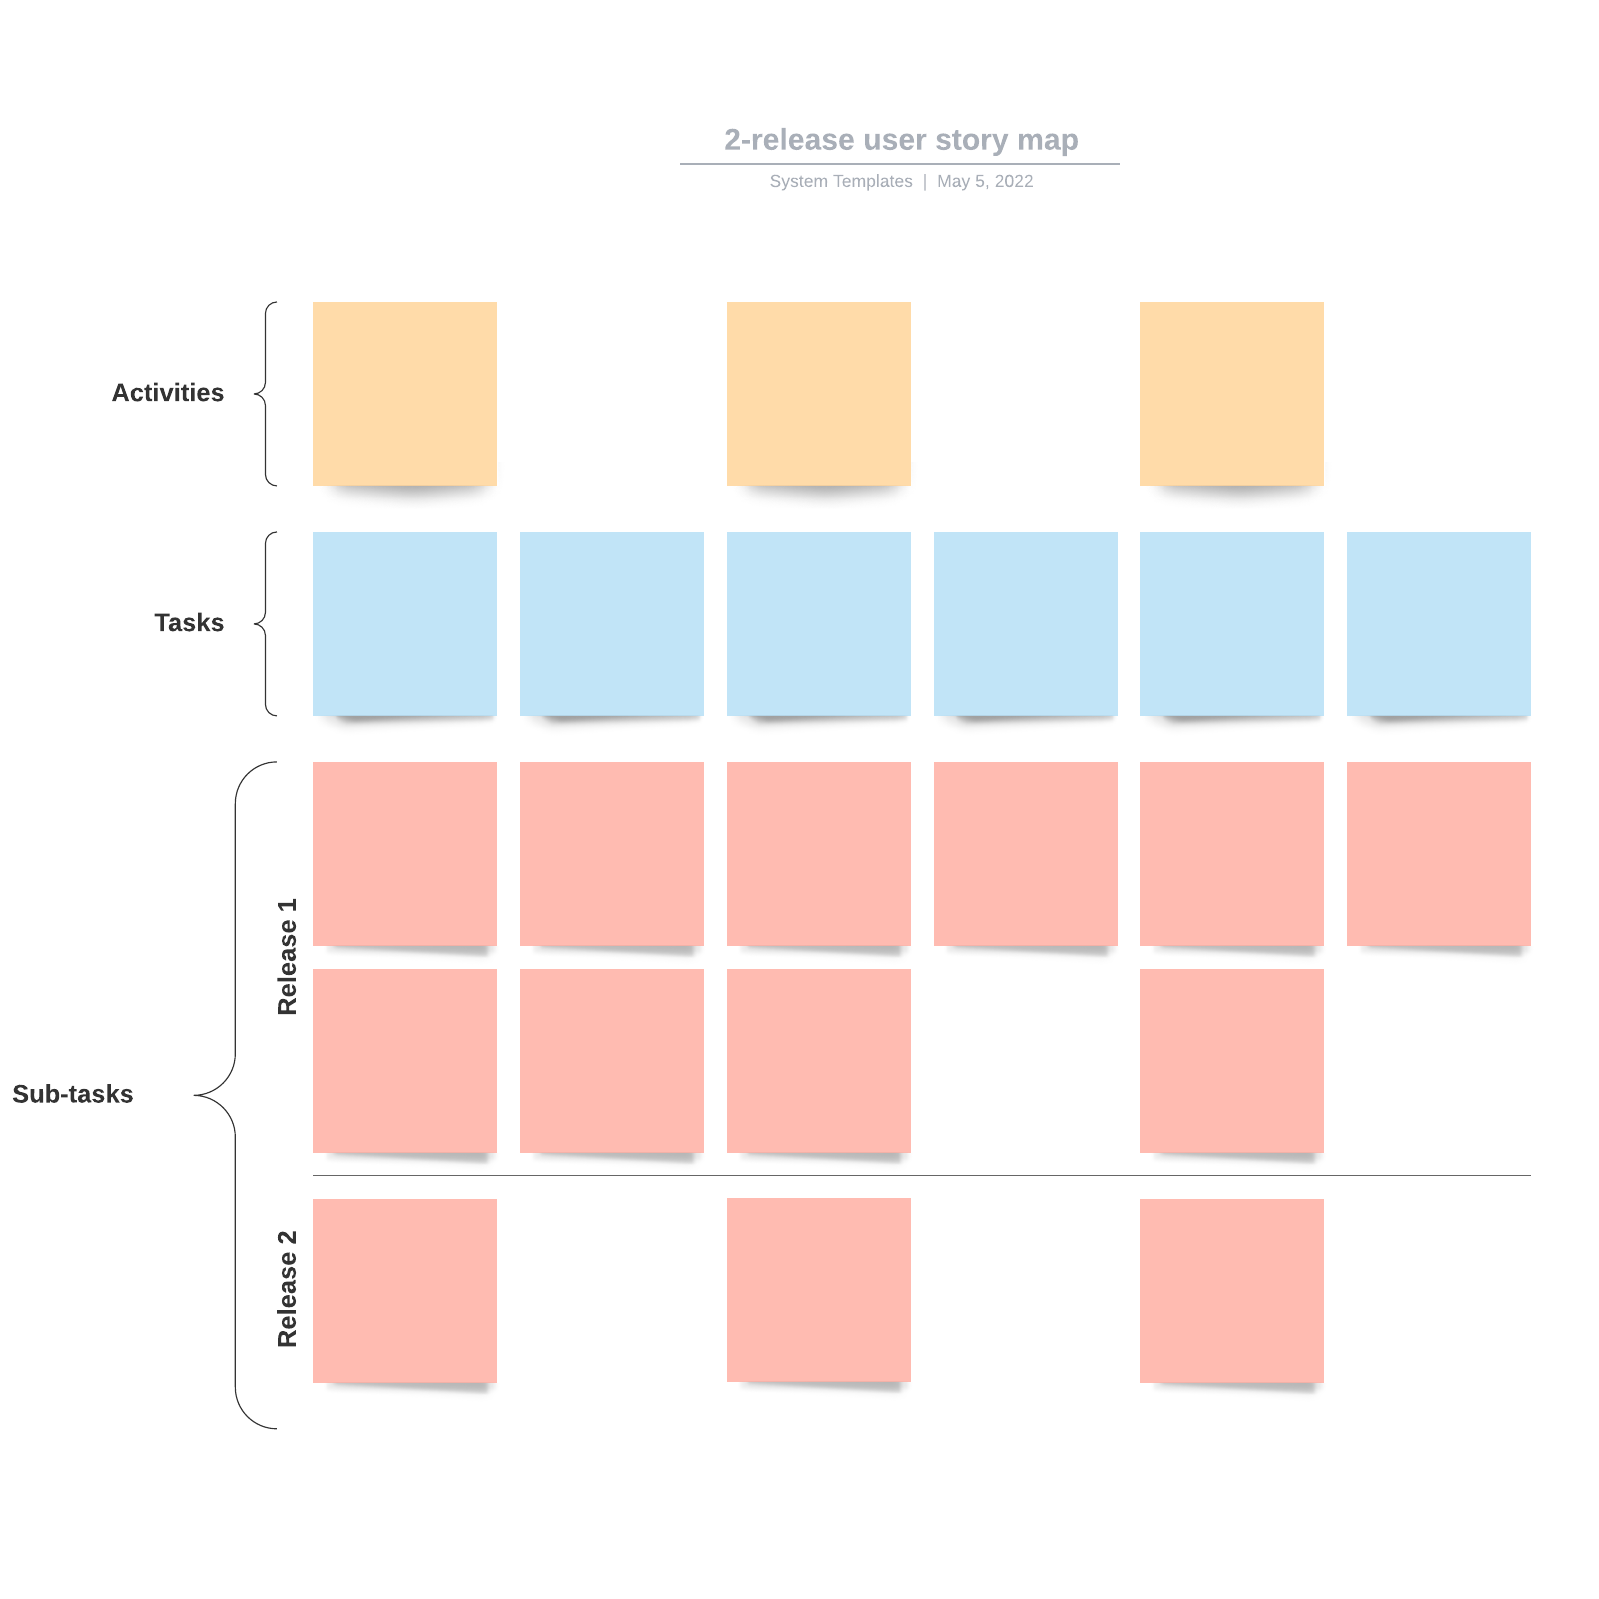 2-release user story map